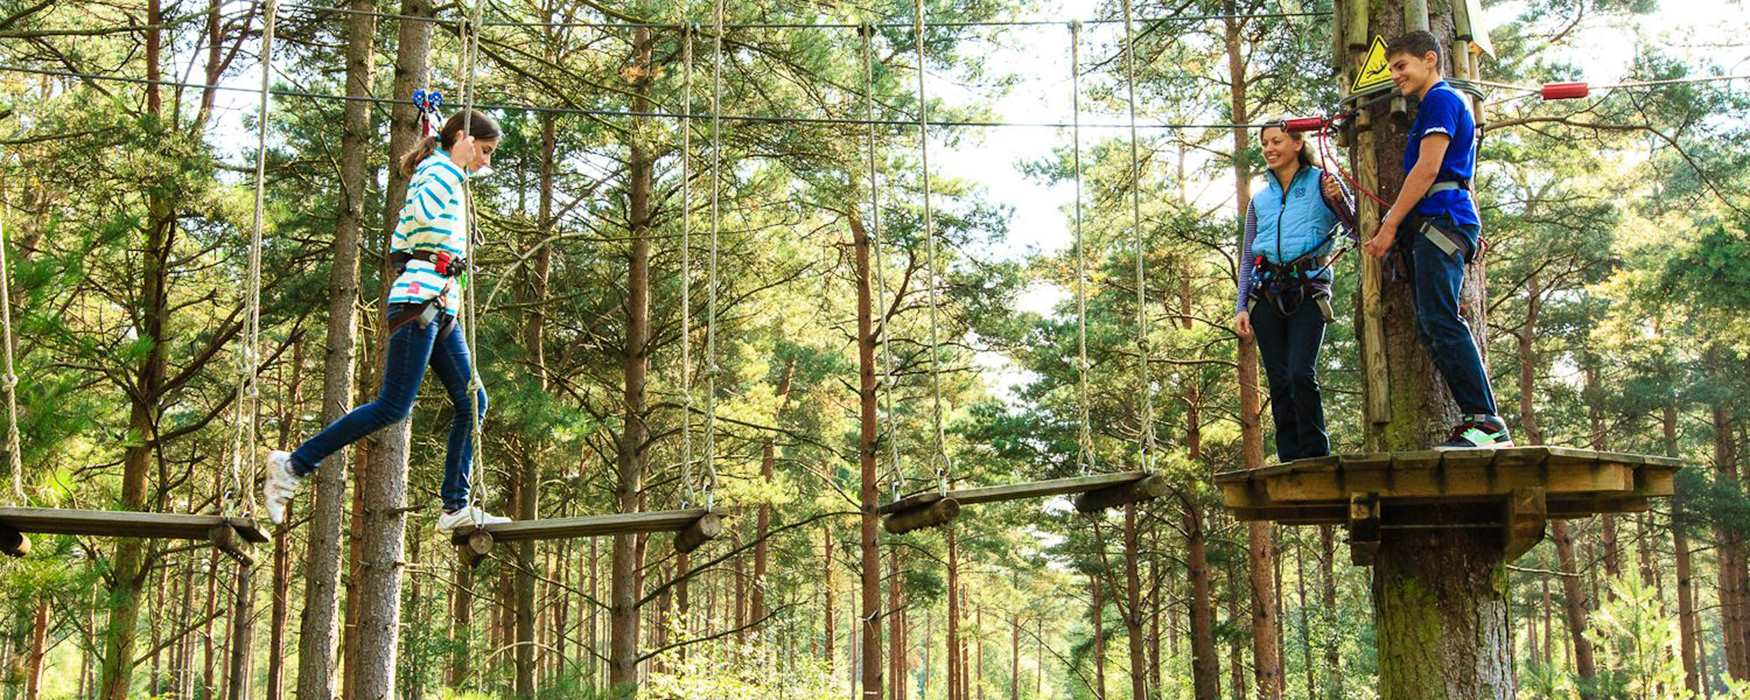 Go Ape! at Haldon Forest Park